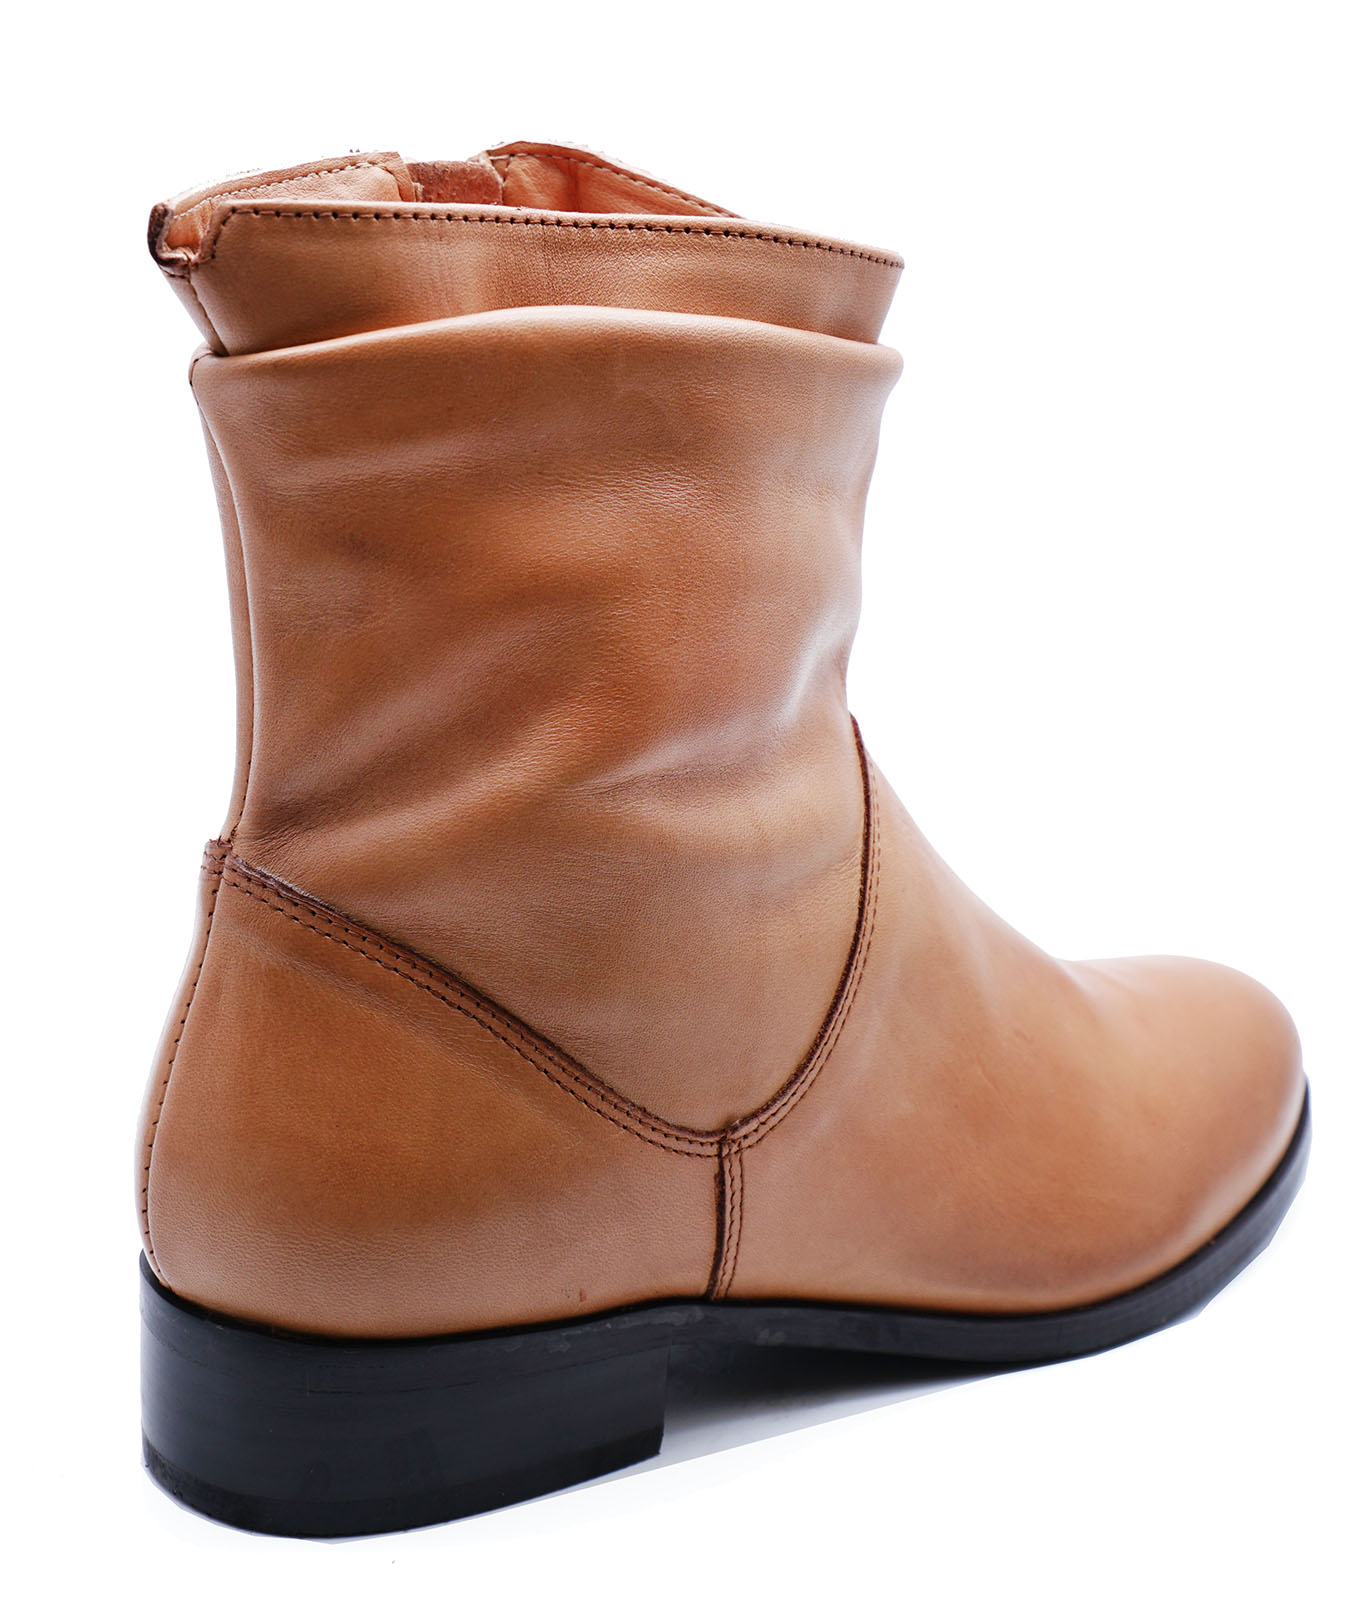 LADIES-FLAT-GENUINE-LEATHER-TAN-ZIP-UP-ANKLE-CALF-BOOTS-COMFY-SHOES-SIZES-2-9 thumbnail 39